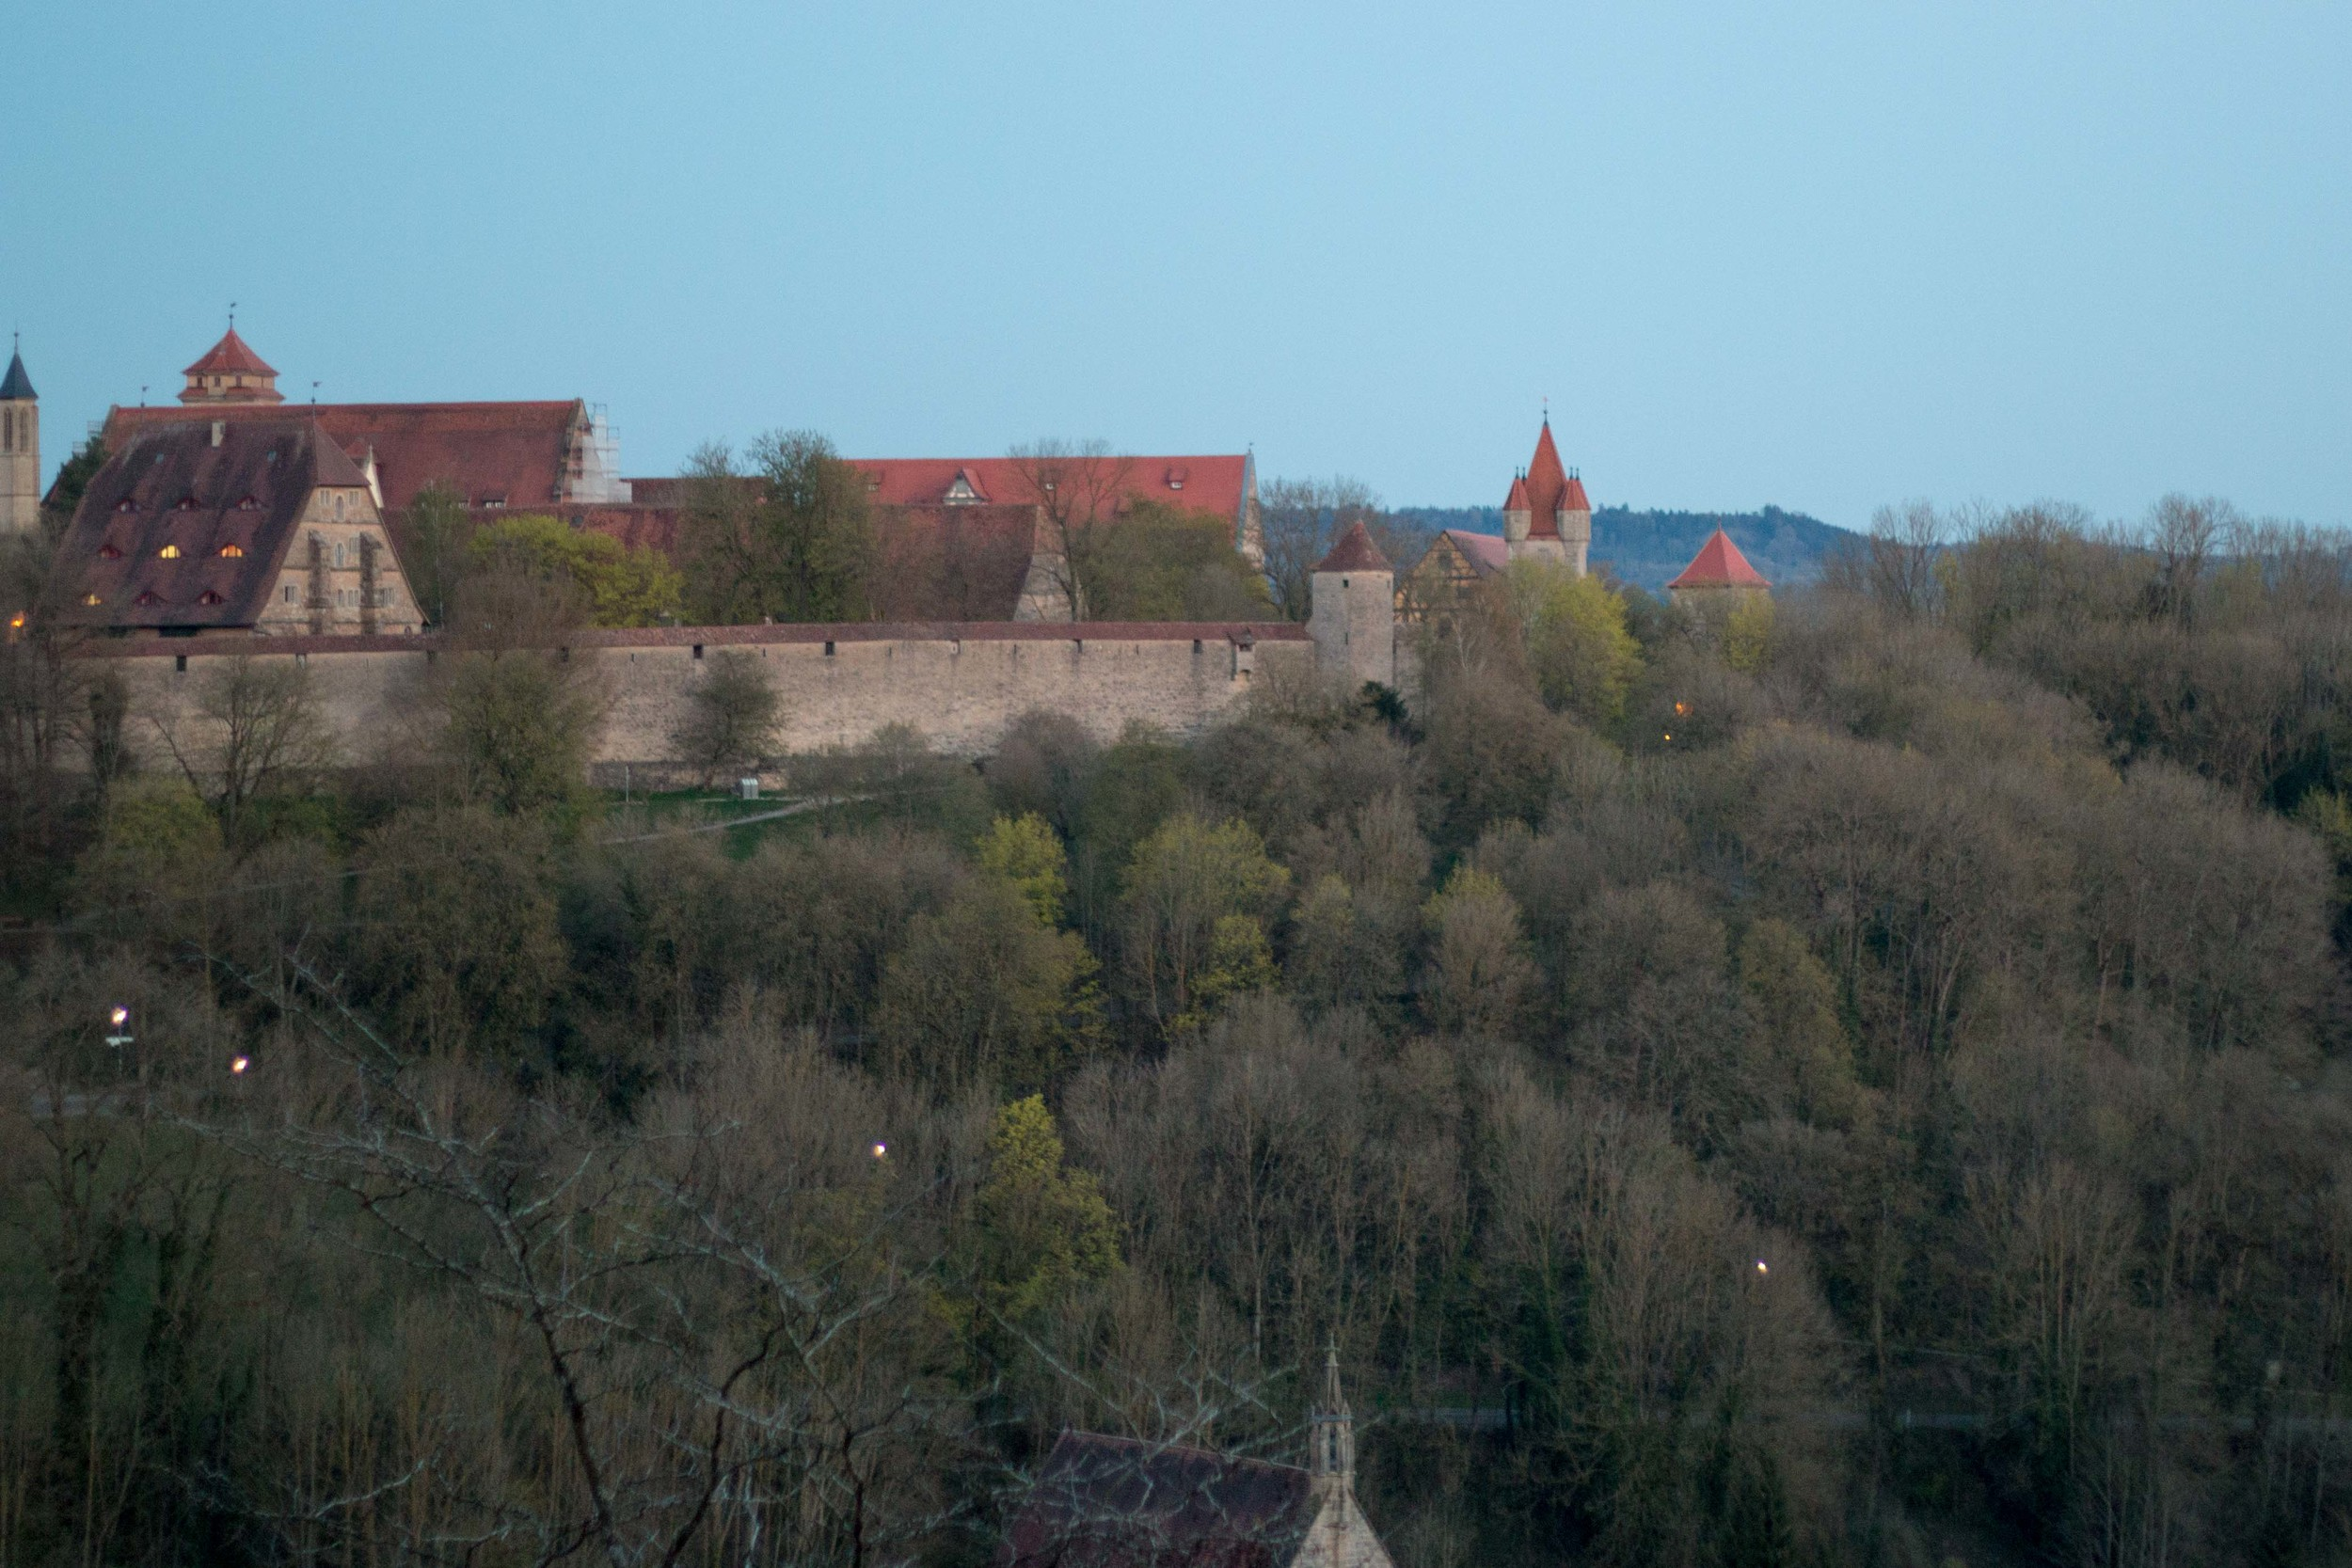 View of the city and walls from where the Castle used to stand (which is now a big garden)